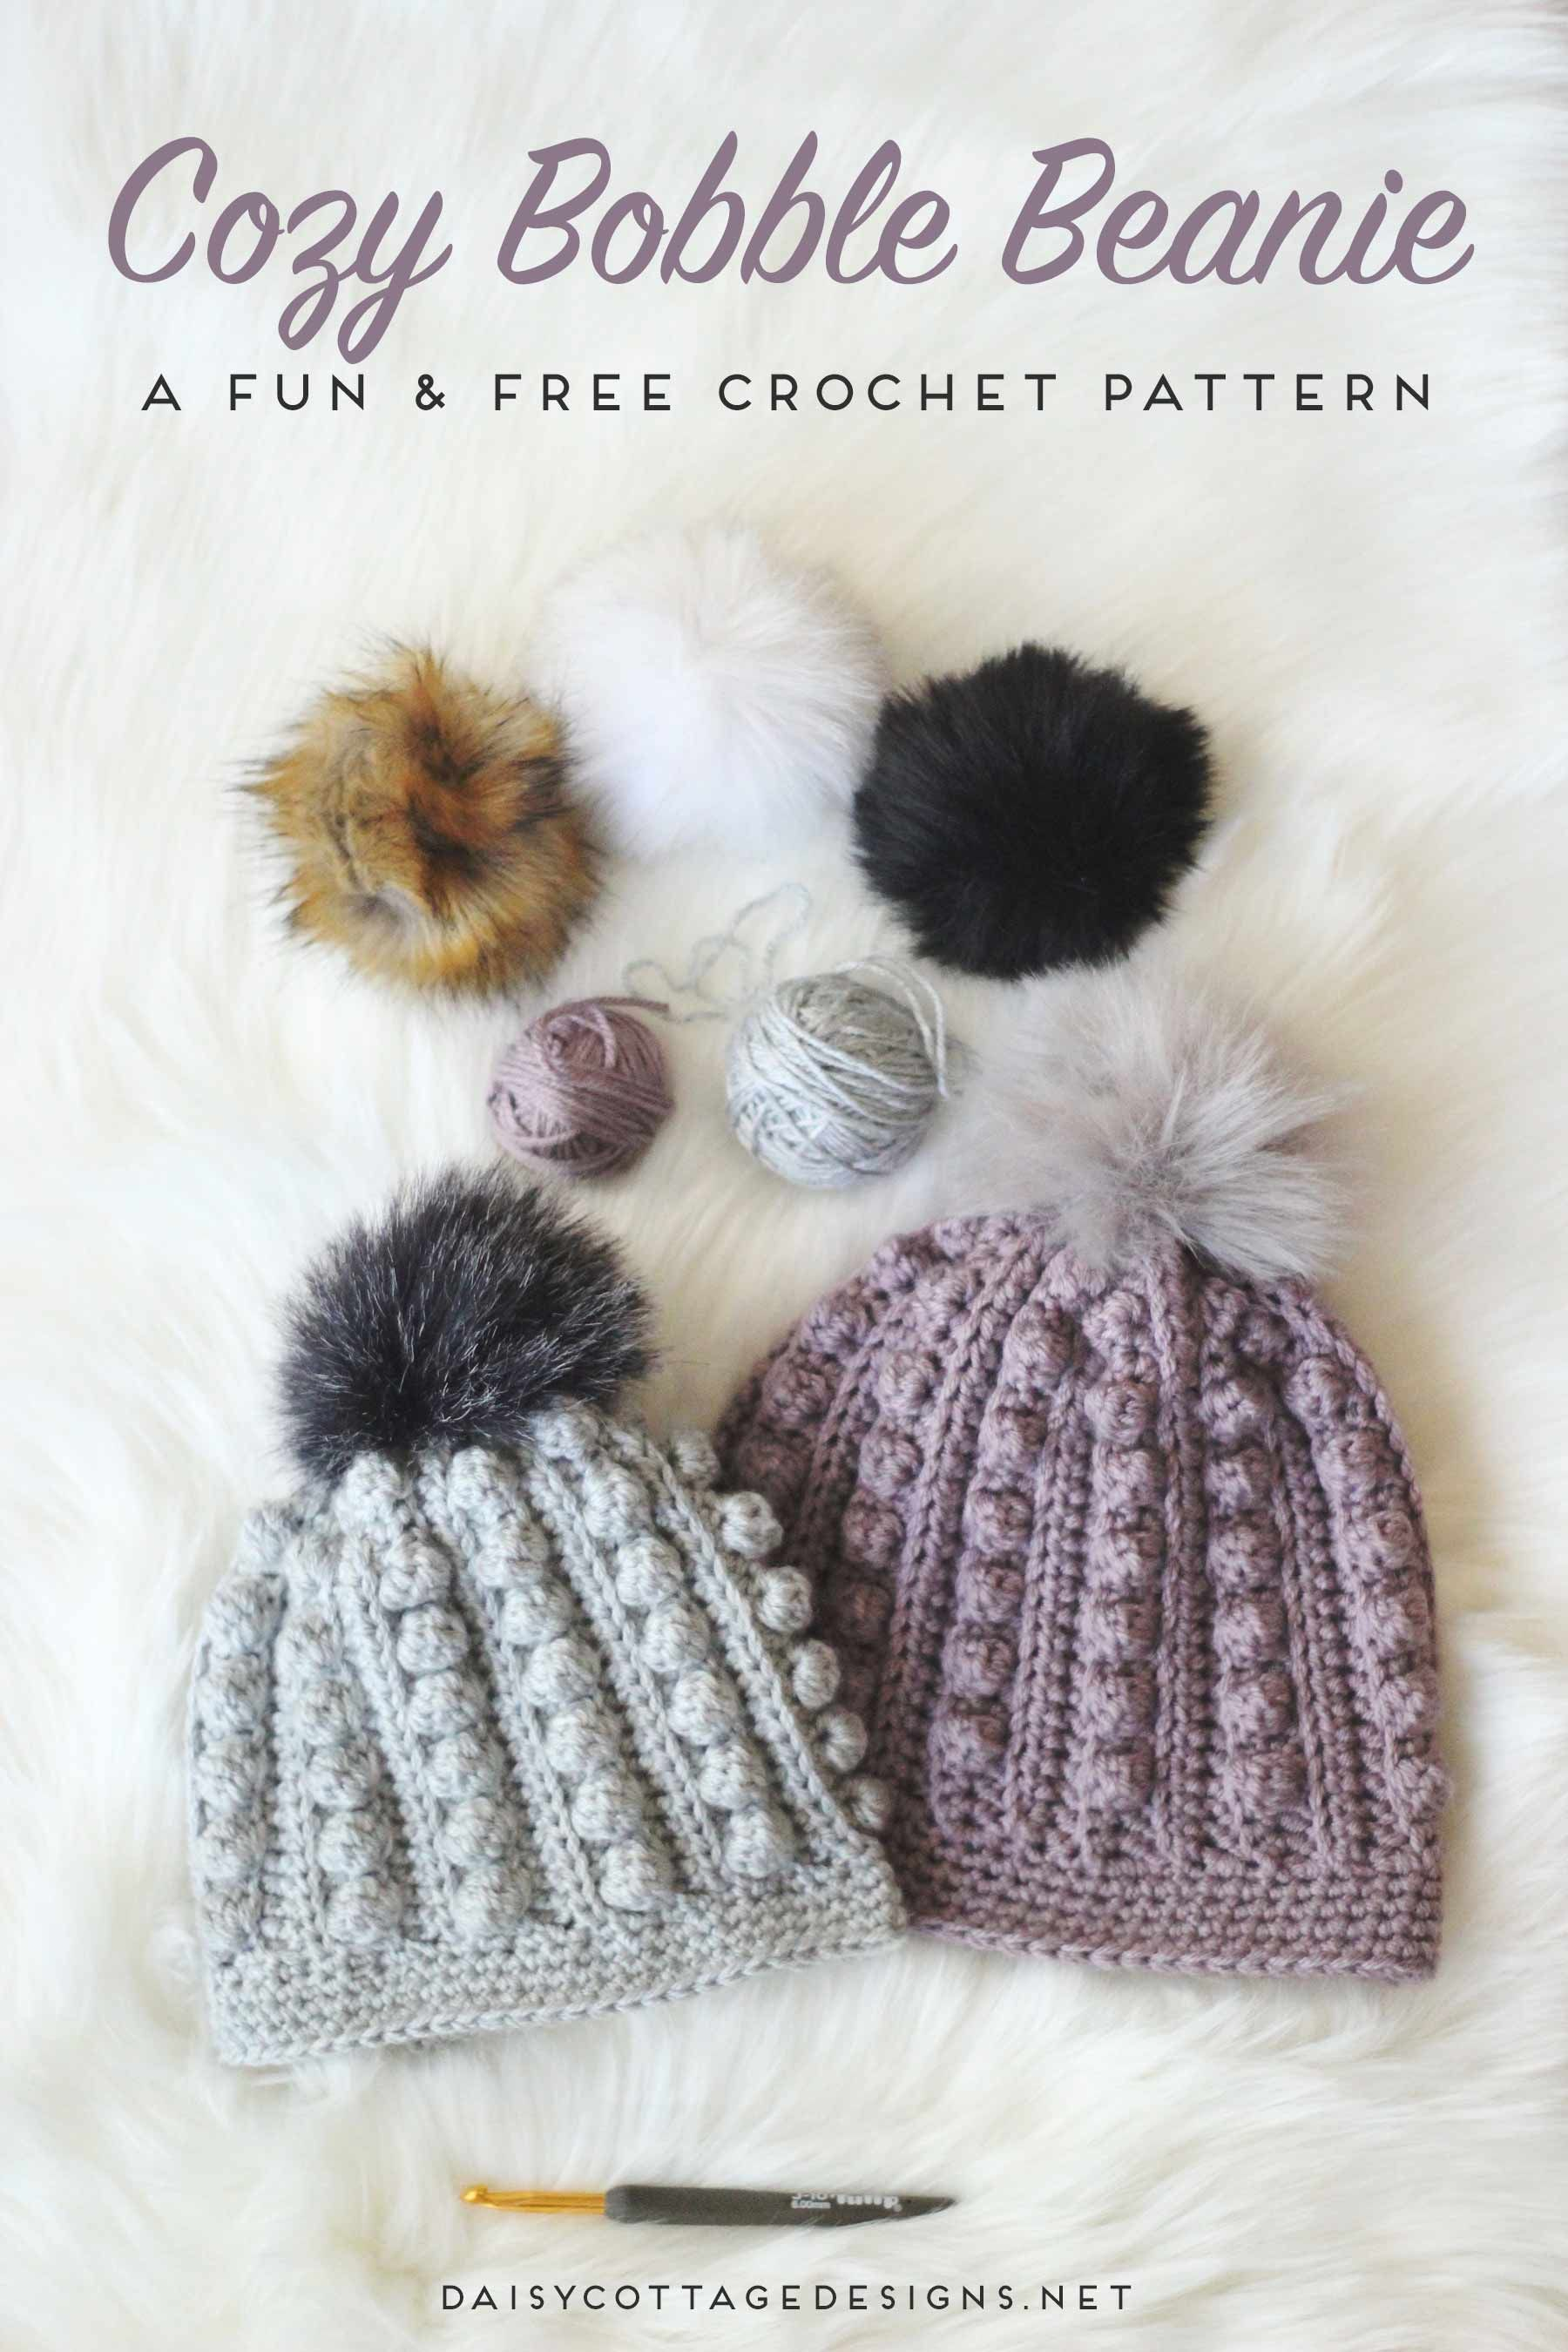 Easy crochet coasters from cottage design hat crochet and free easy crochet coasters from bankloansurffo Gallery